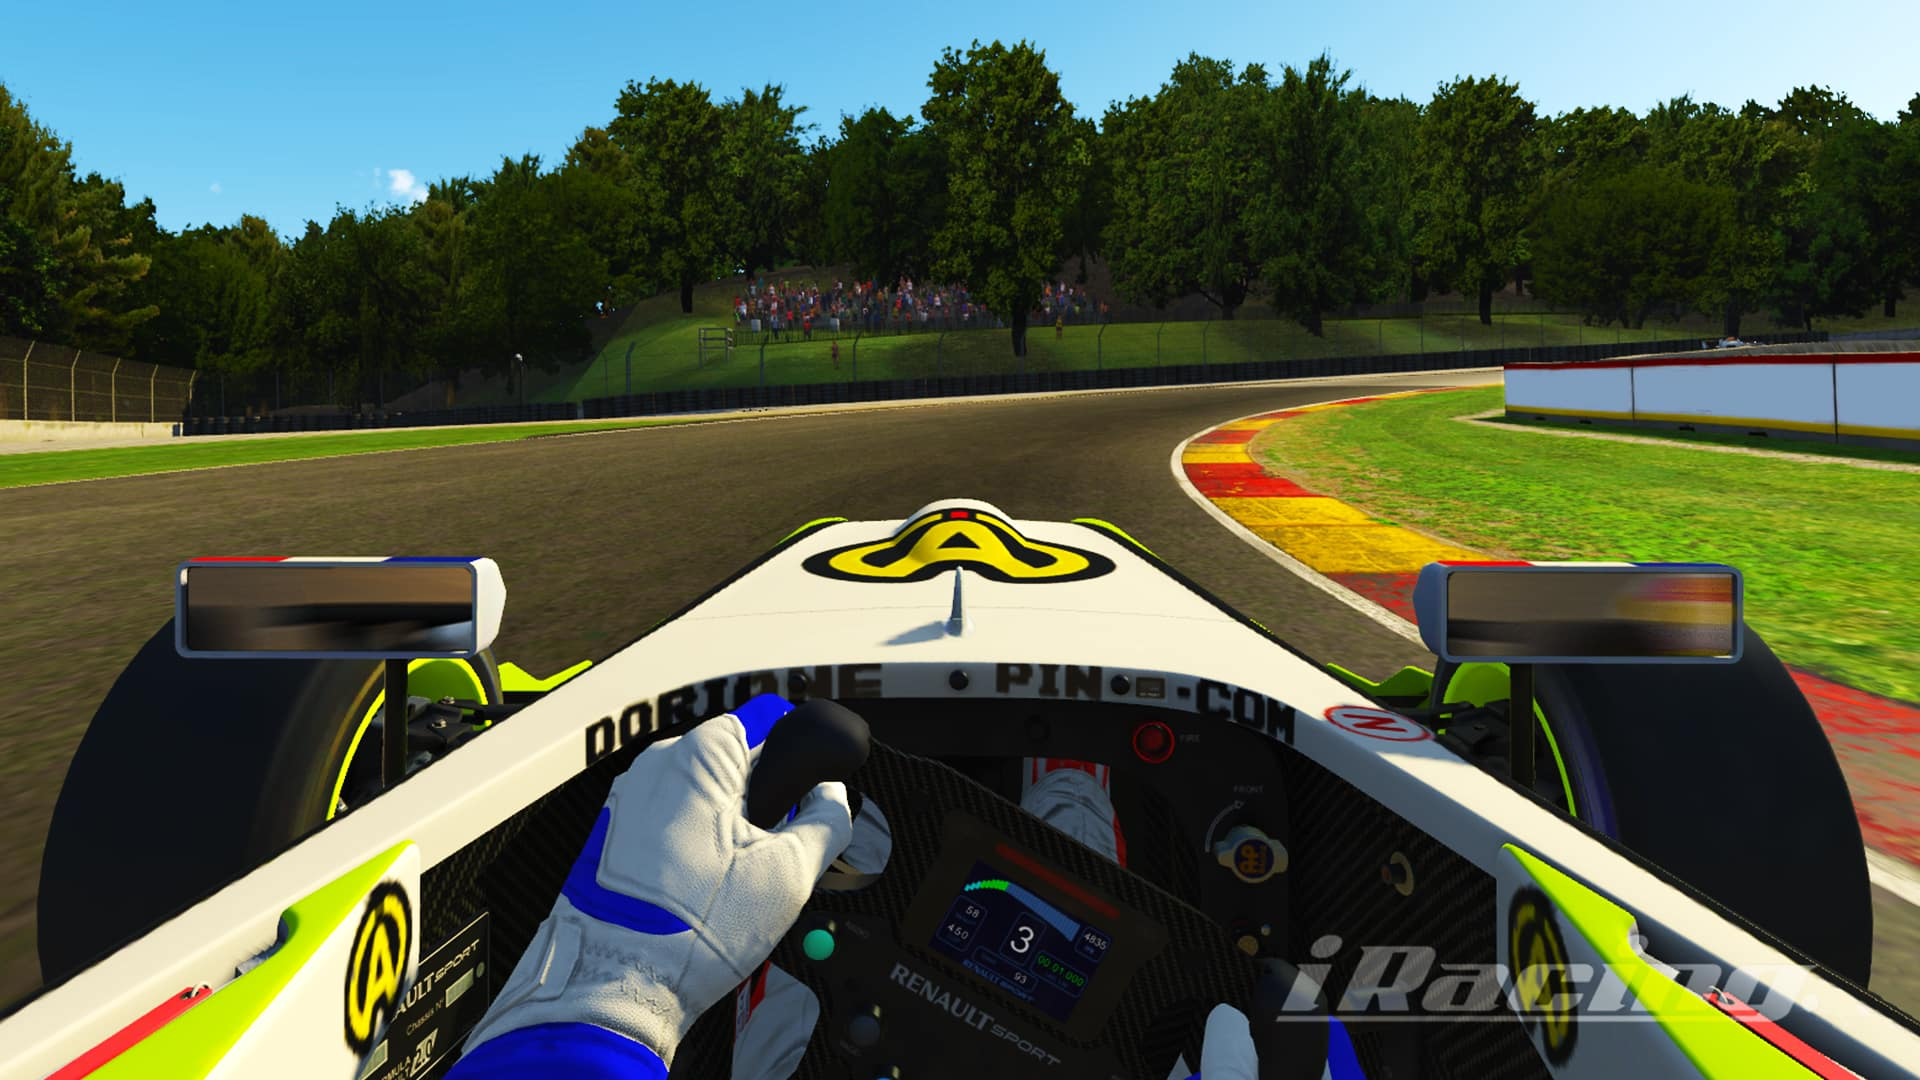 Doriane Pin drives her Formule Renault 2.0 on iRacing, cockpit view